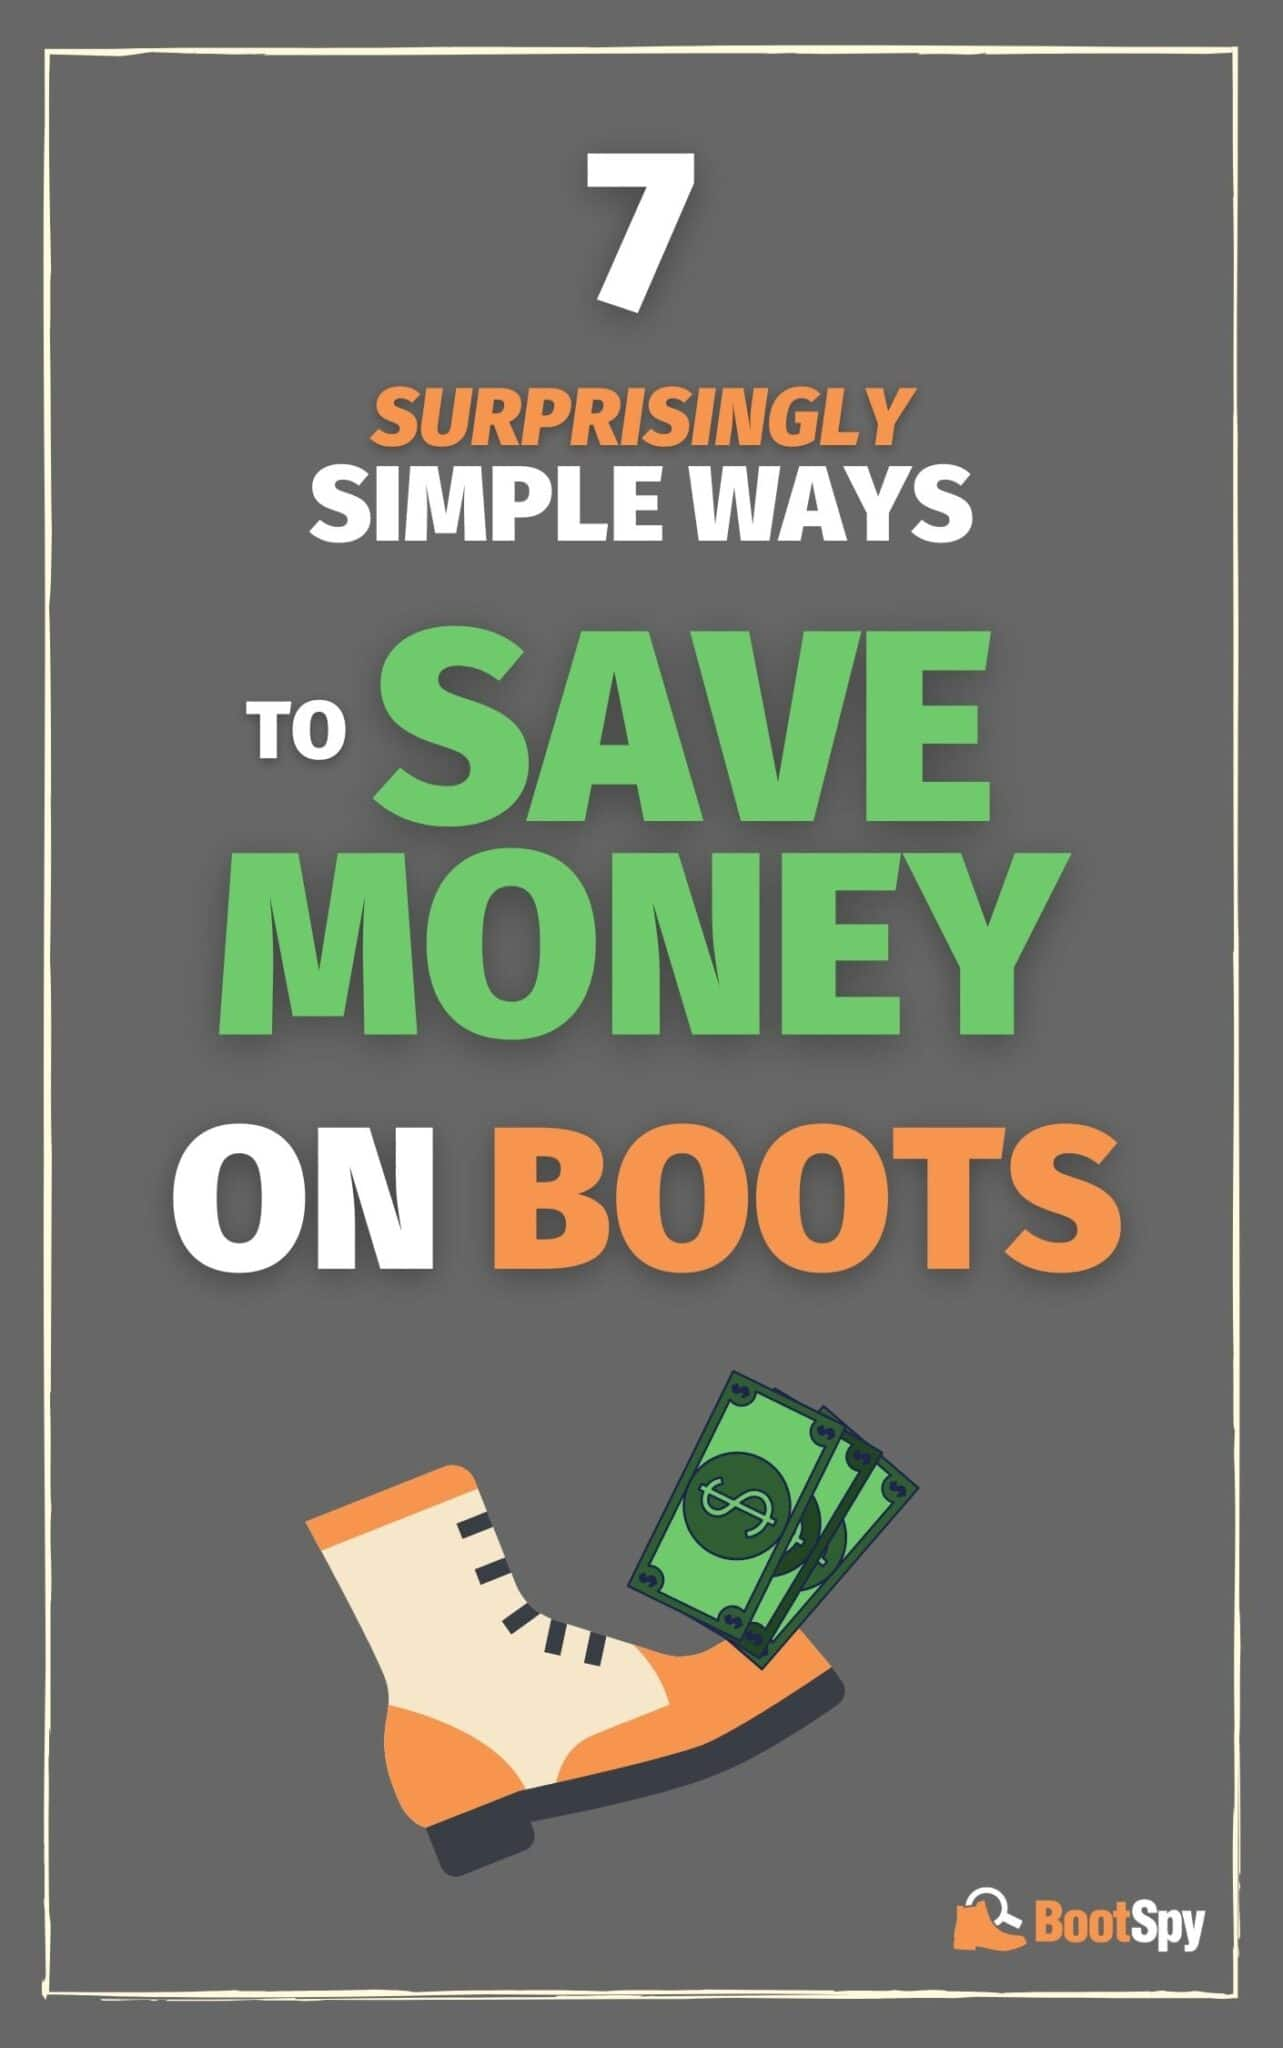 7 Surprisingly Simple Ways to Save Money on Boots